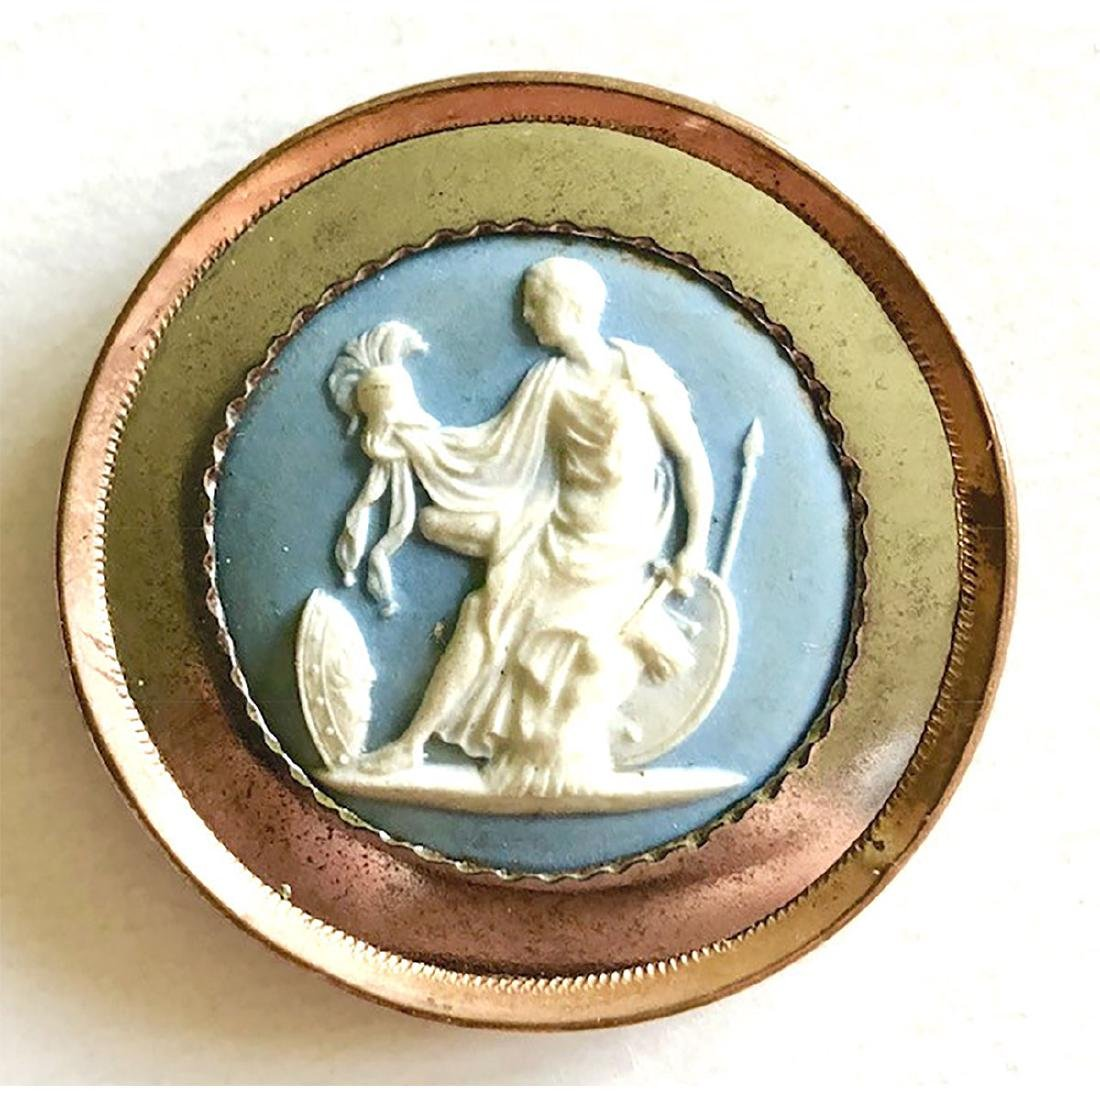 LARGE 18TH C. WEDGWOOD BUTTON WITH COPPER RIM